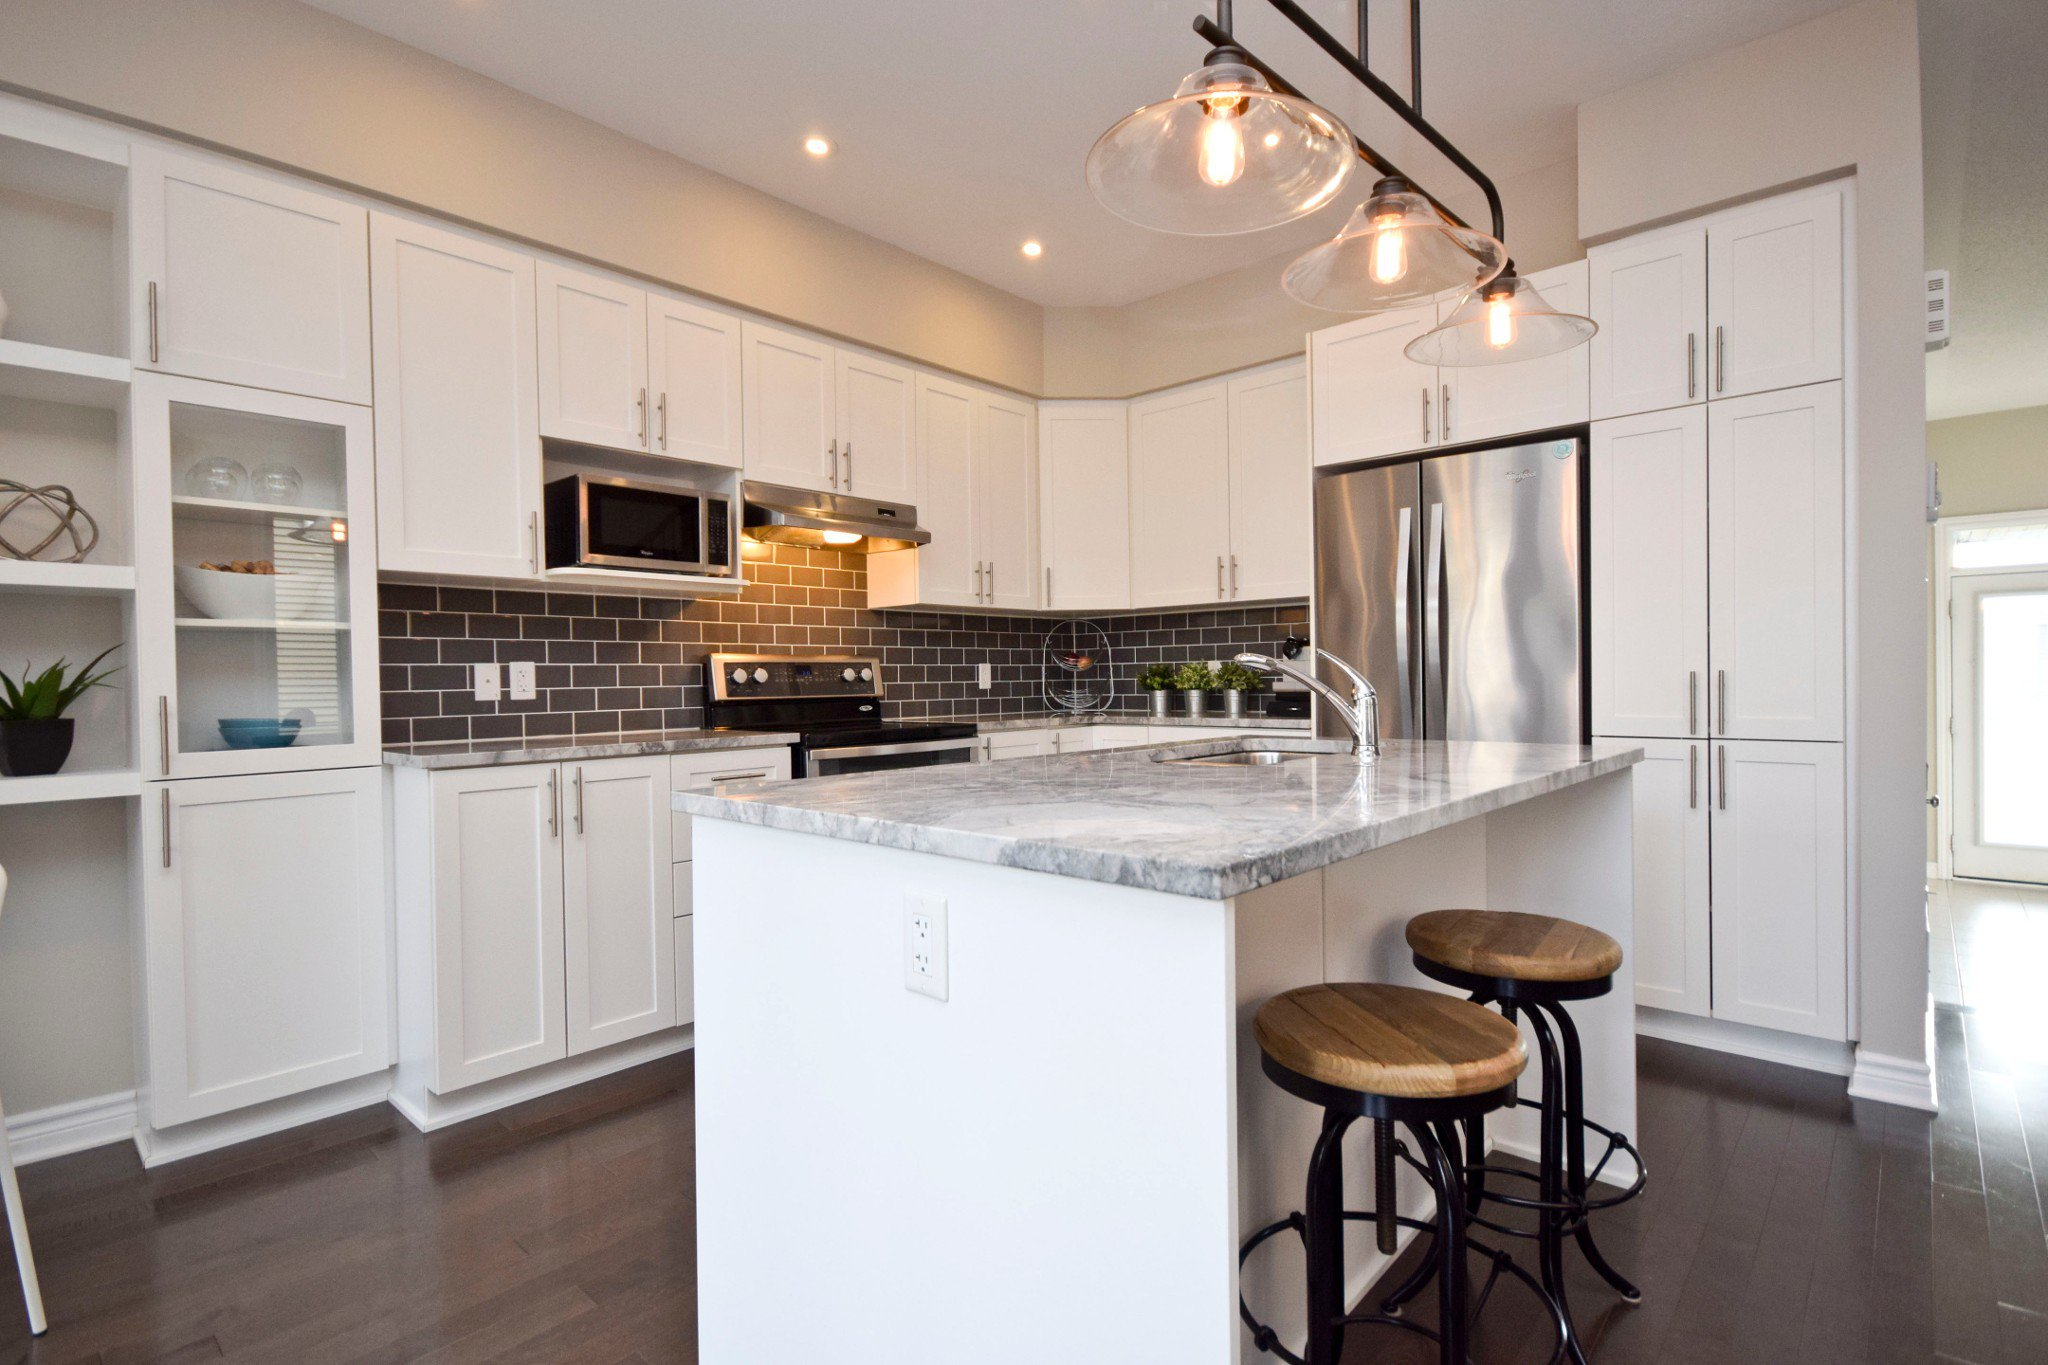 Photo 17: Photos: 131 Popplewell Crescent in Ottawa: Cedargrove / Fraserdale House for sale (Barrhaven)  : MLS®# 1130335